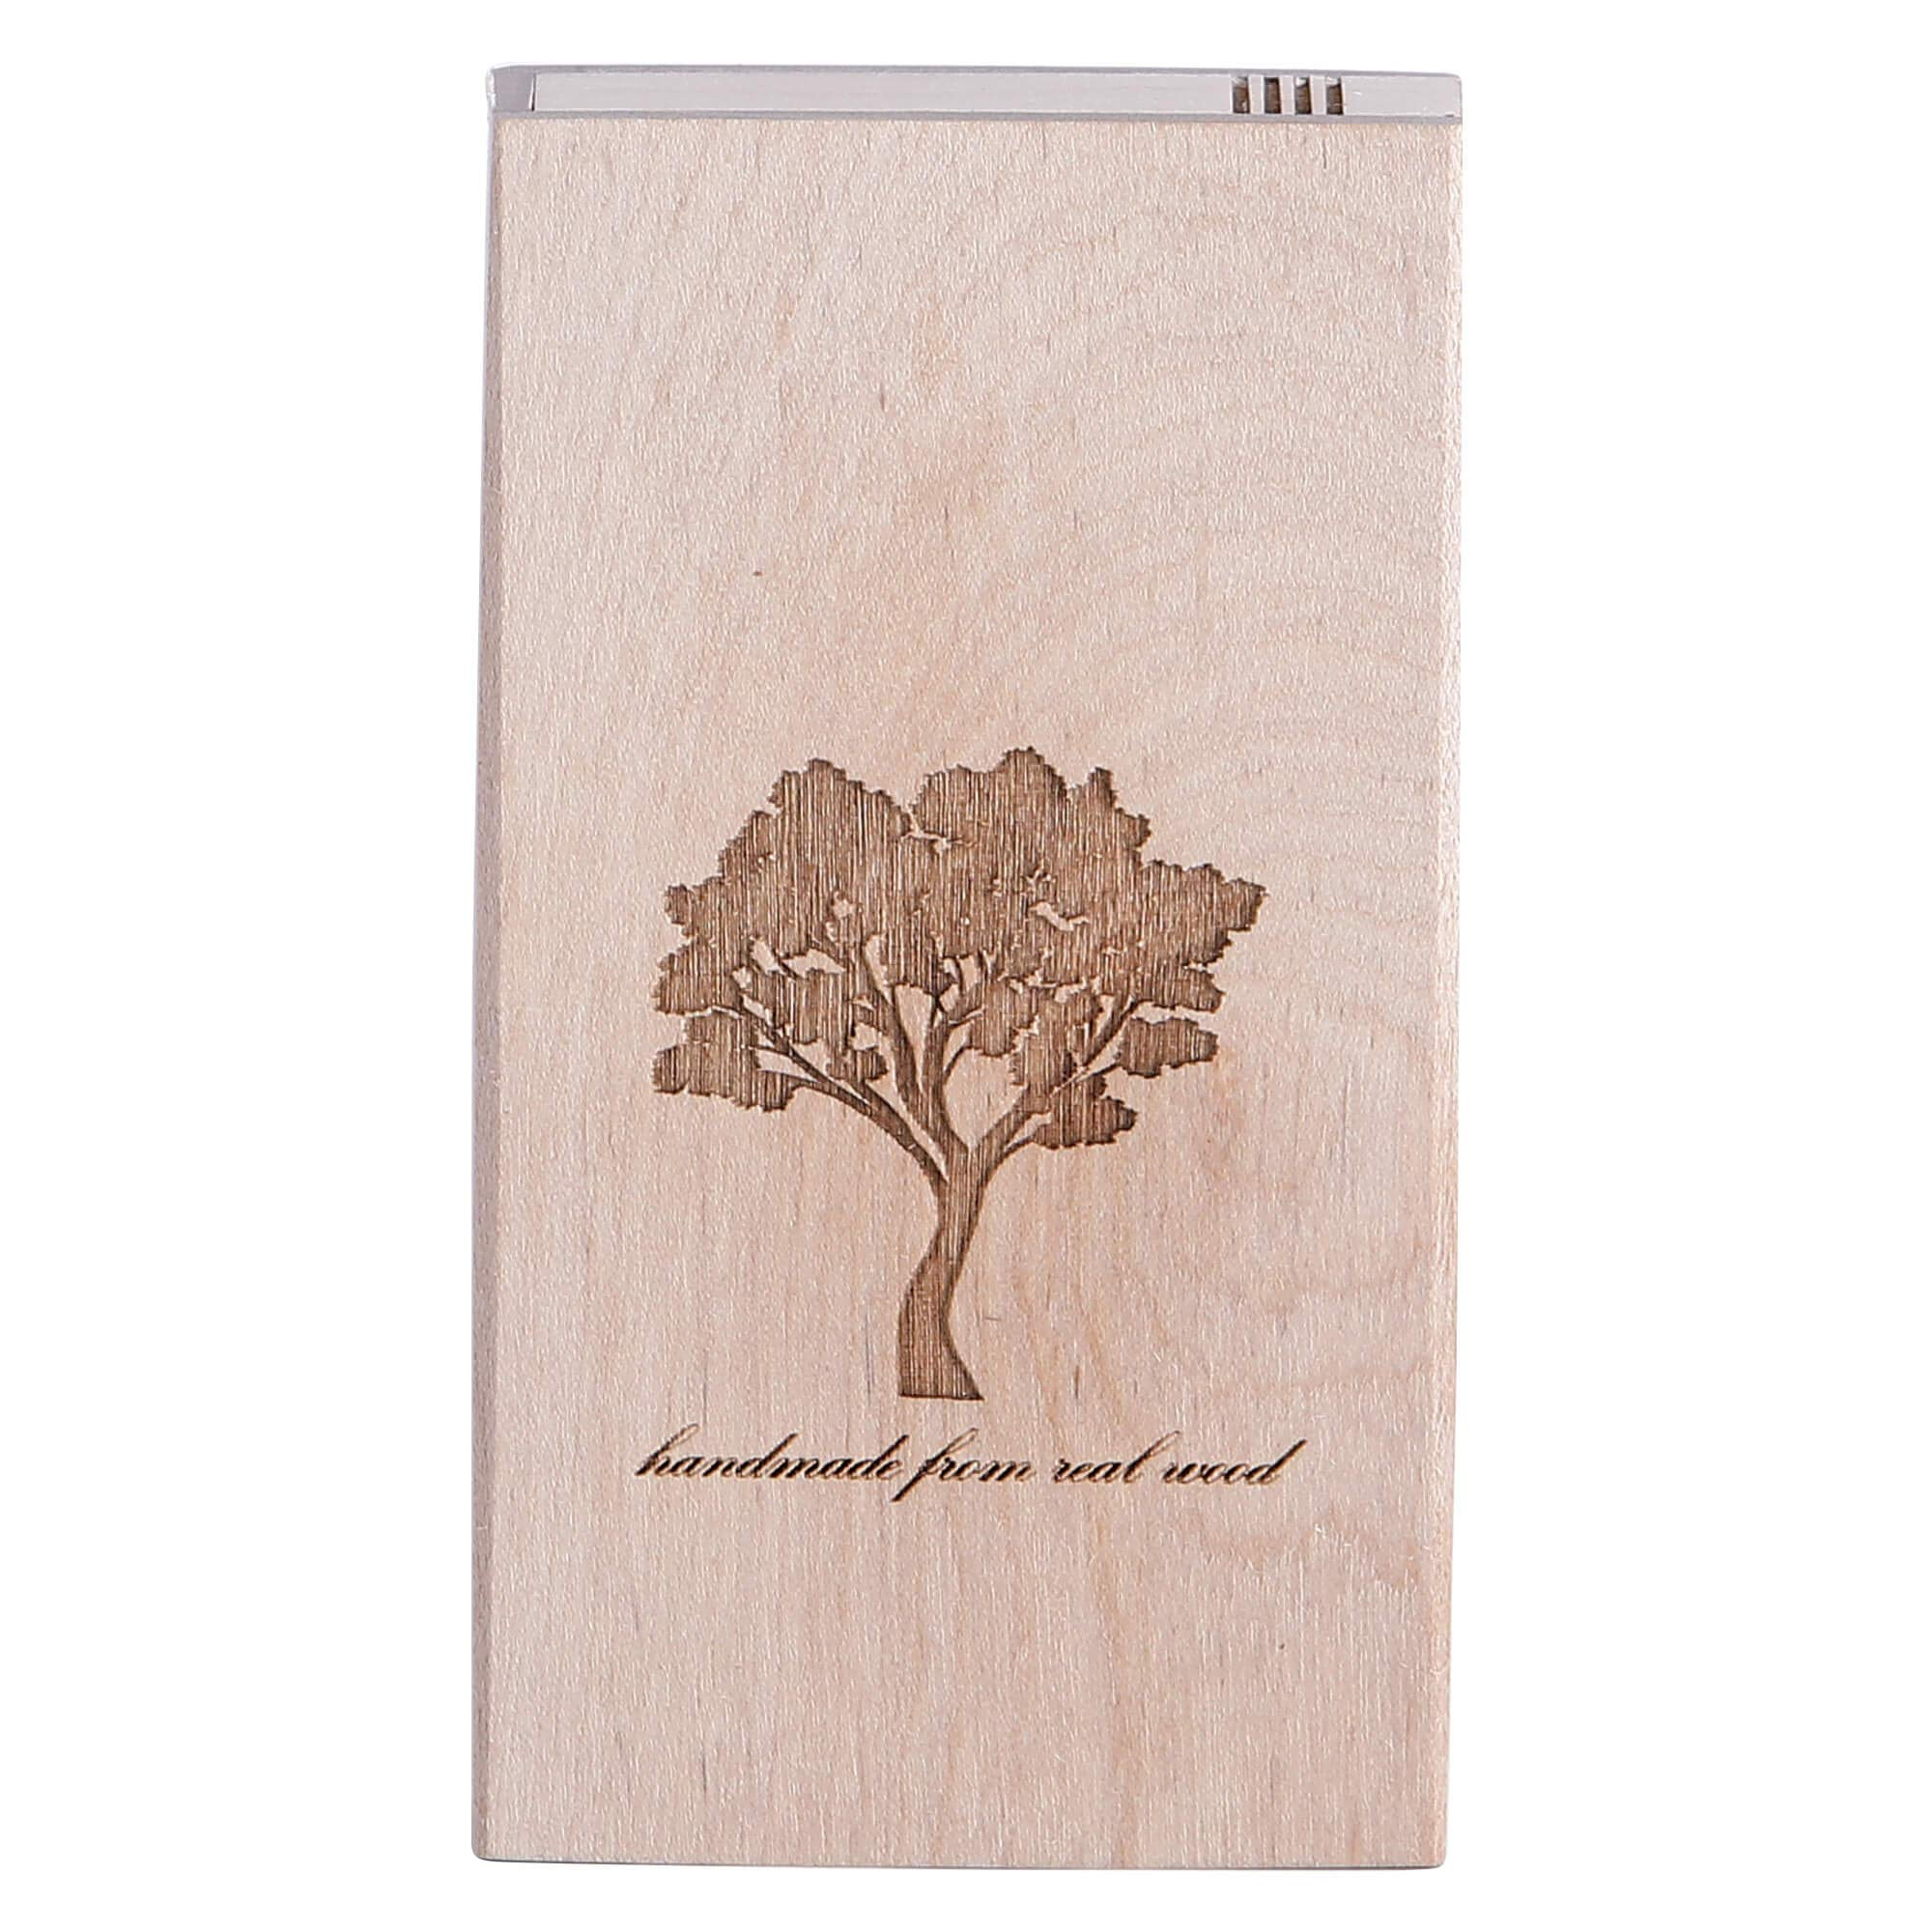 Value Handmade Handcrafted Slim Wooden Cigarette Box, Pocket Carrying Cigarette Case, Brown (Maple Wood) by Value Handmade (Image #1)